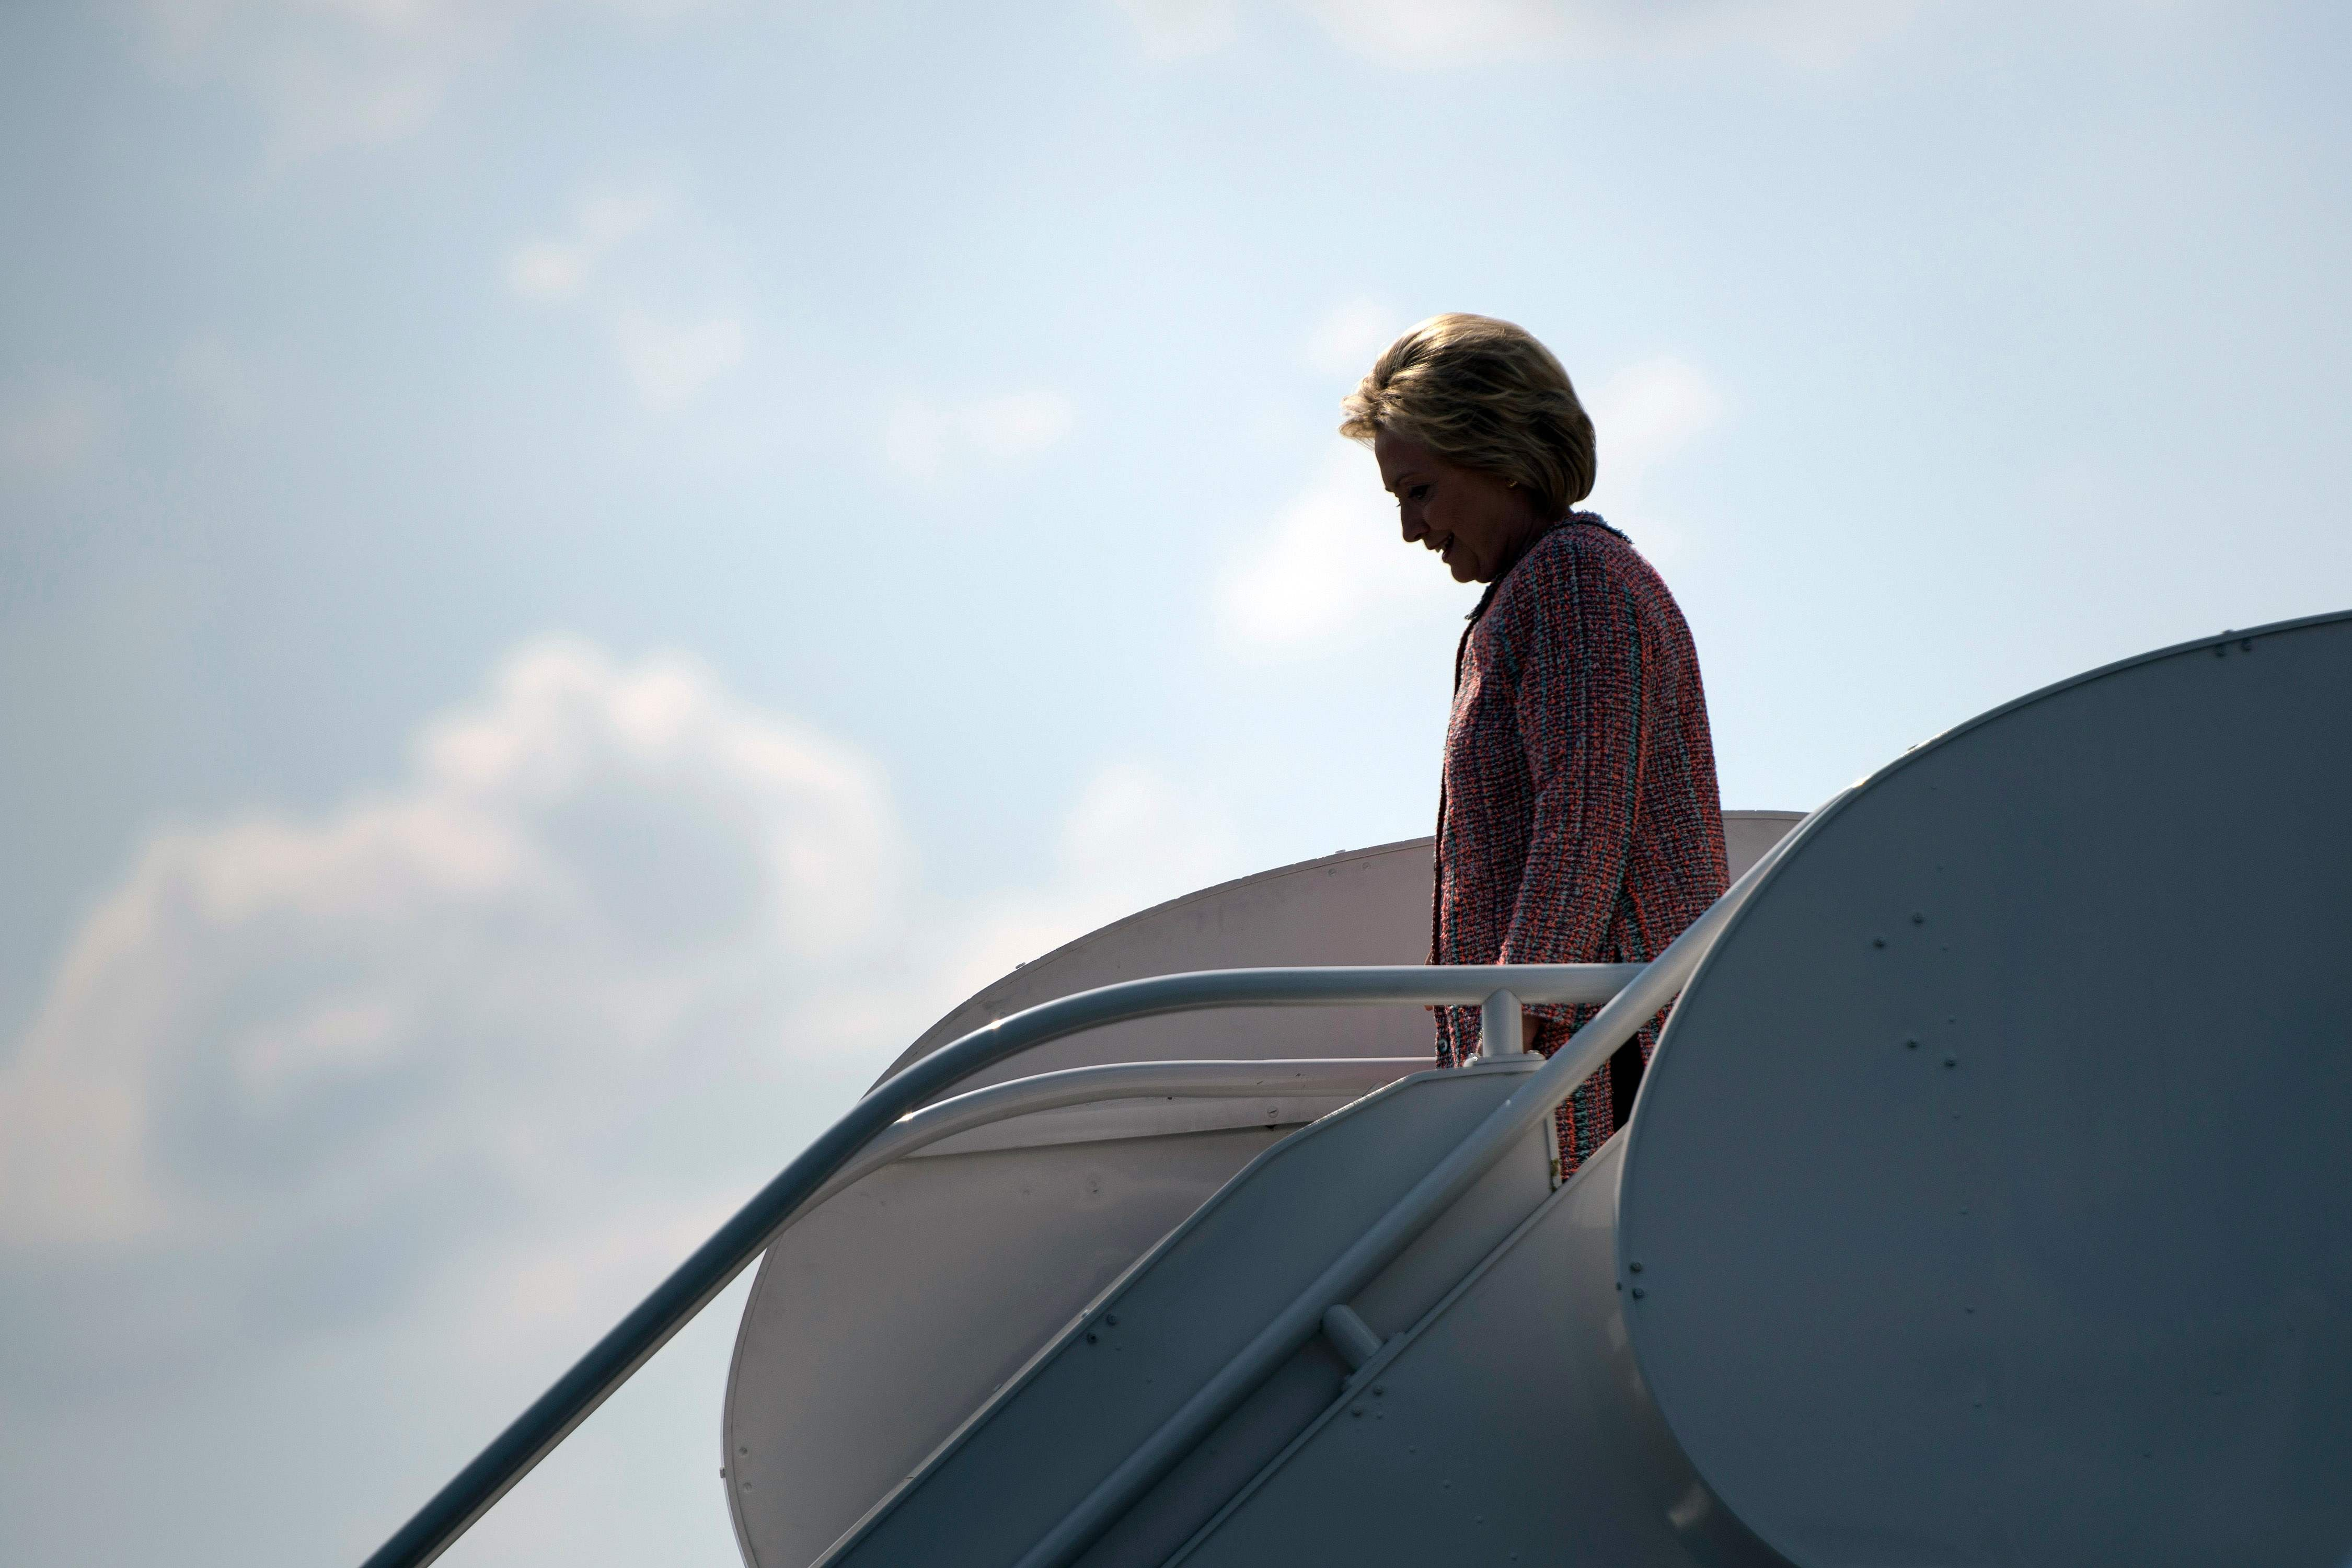 Hillary Clinton arrives at Piedmont Triad International Airport on Sept. 15, 2016 in Greensboro, NC.